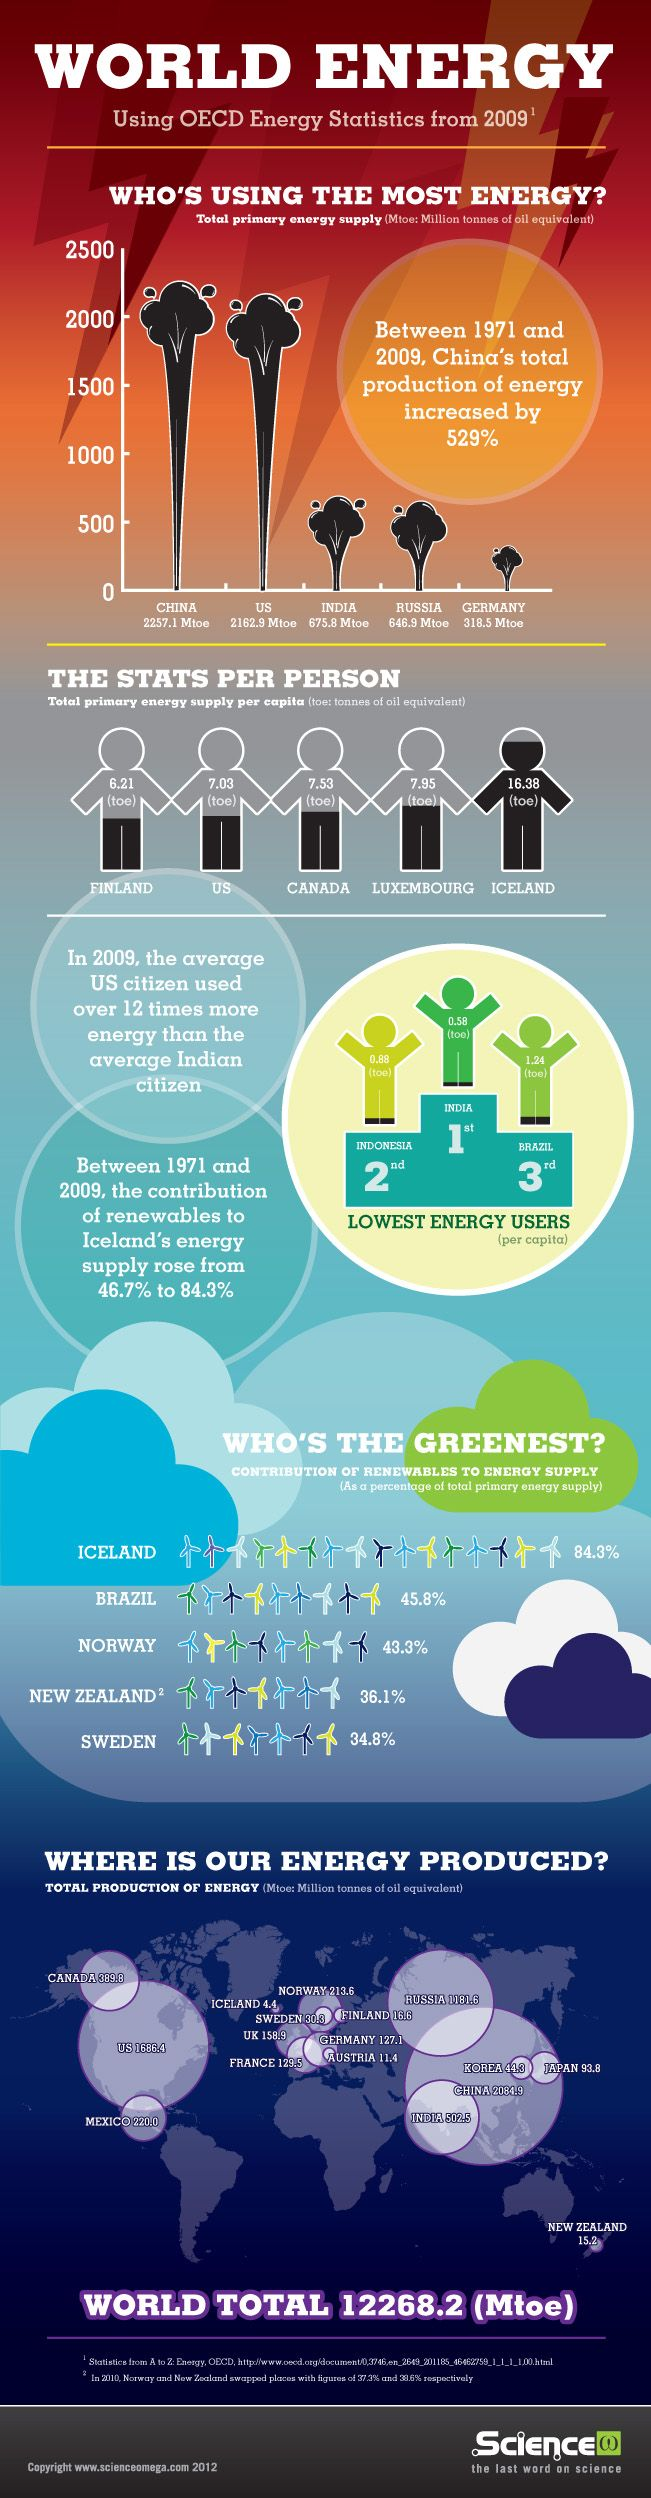 World energy consumption and production.........................................via infographicpins.com